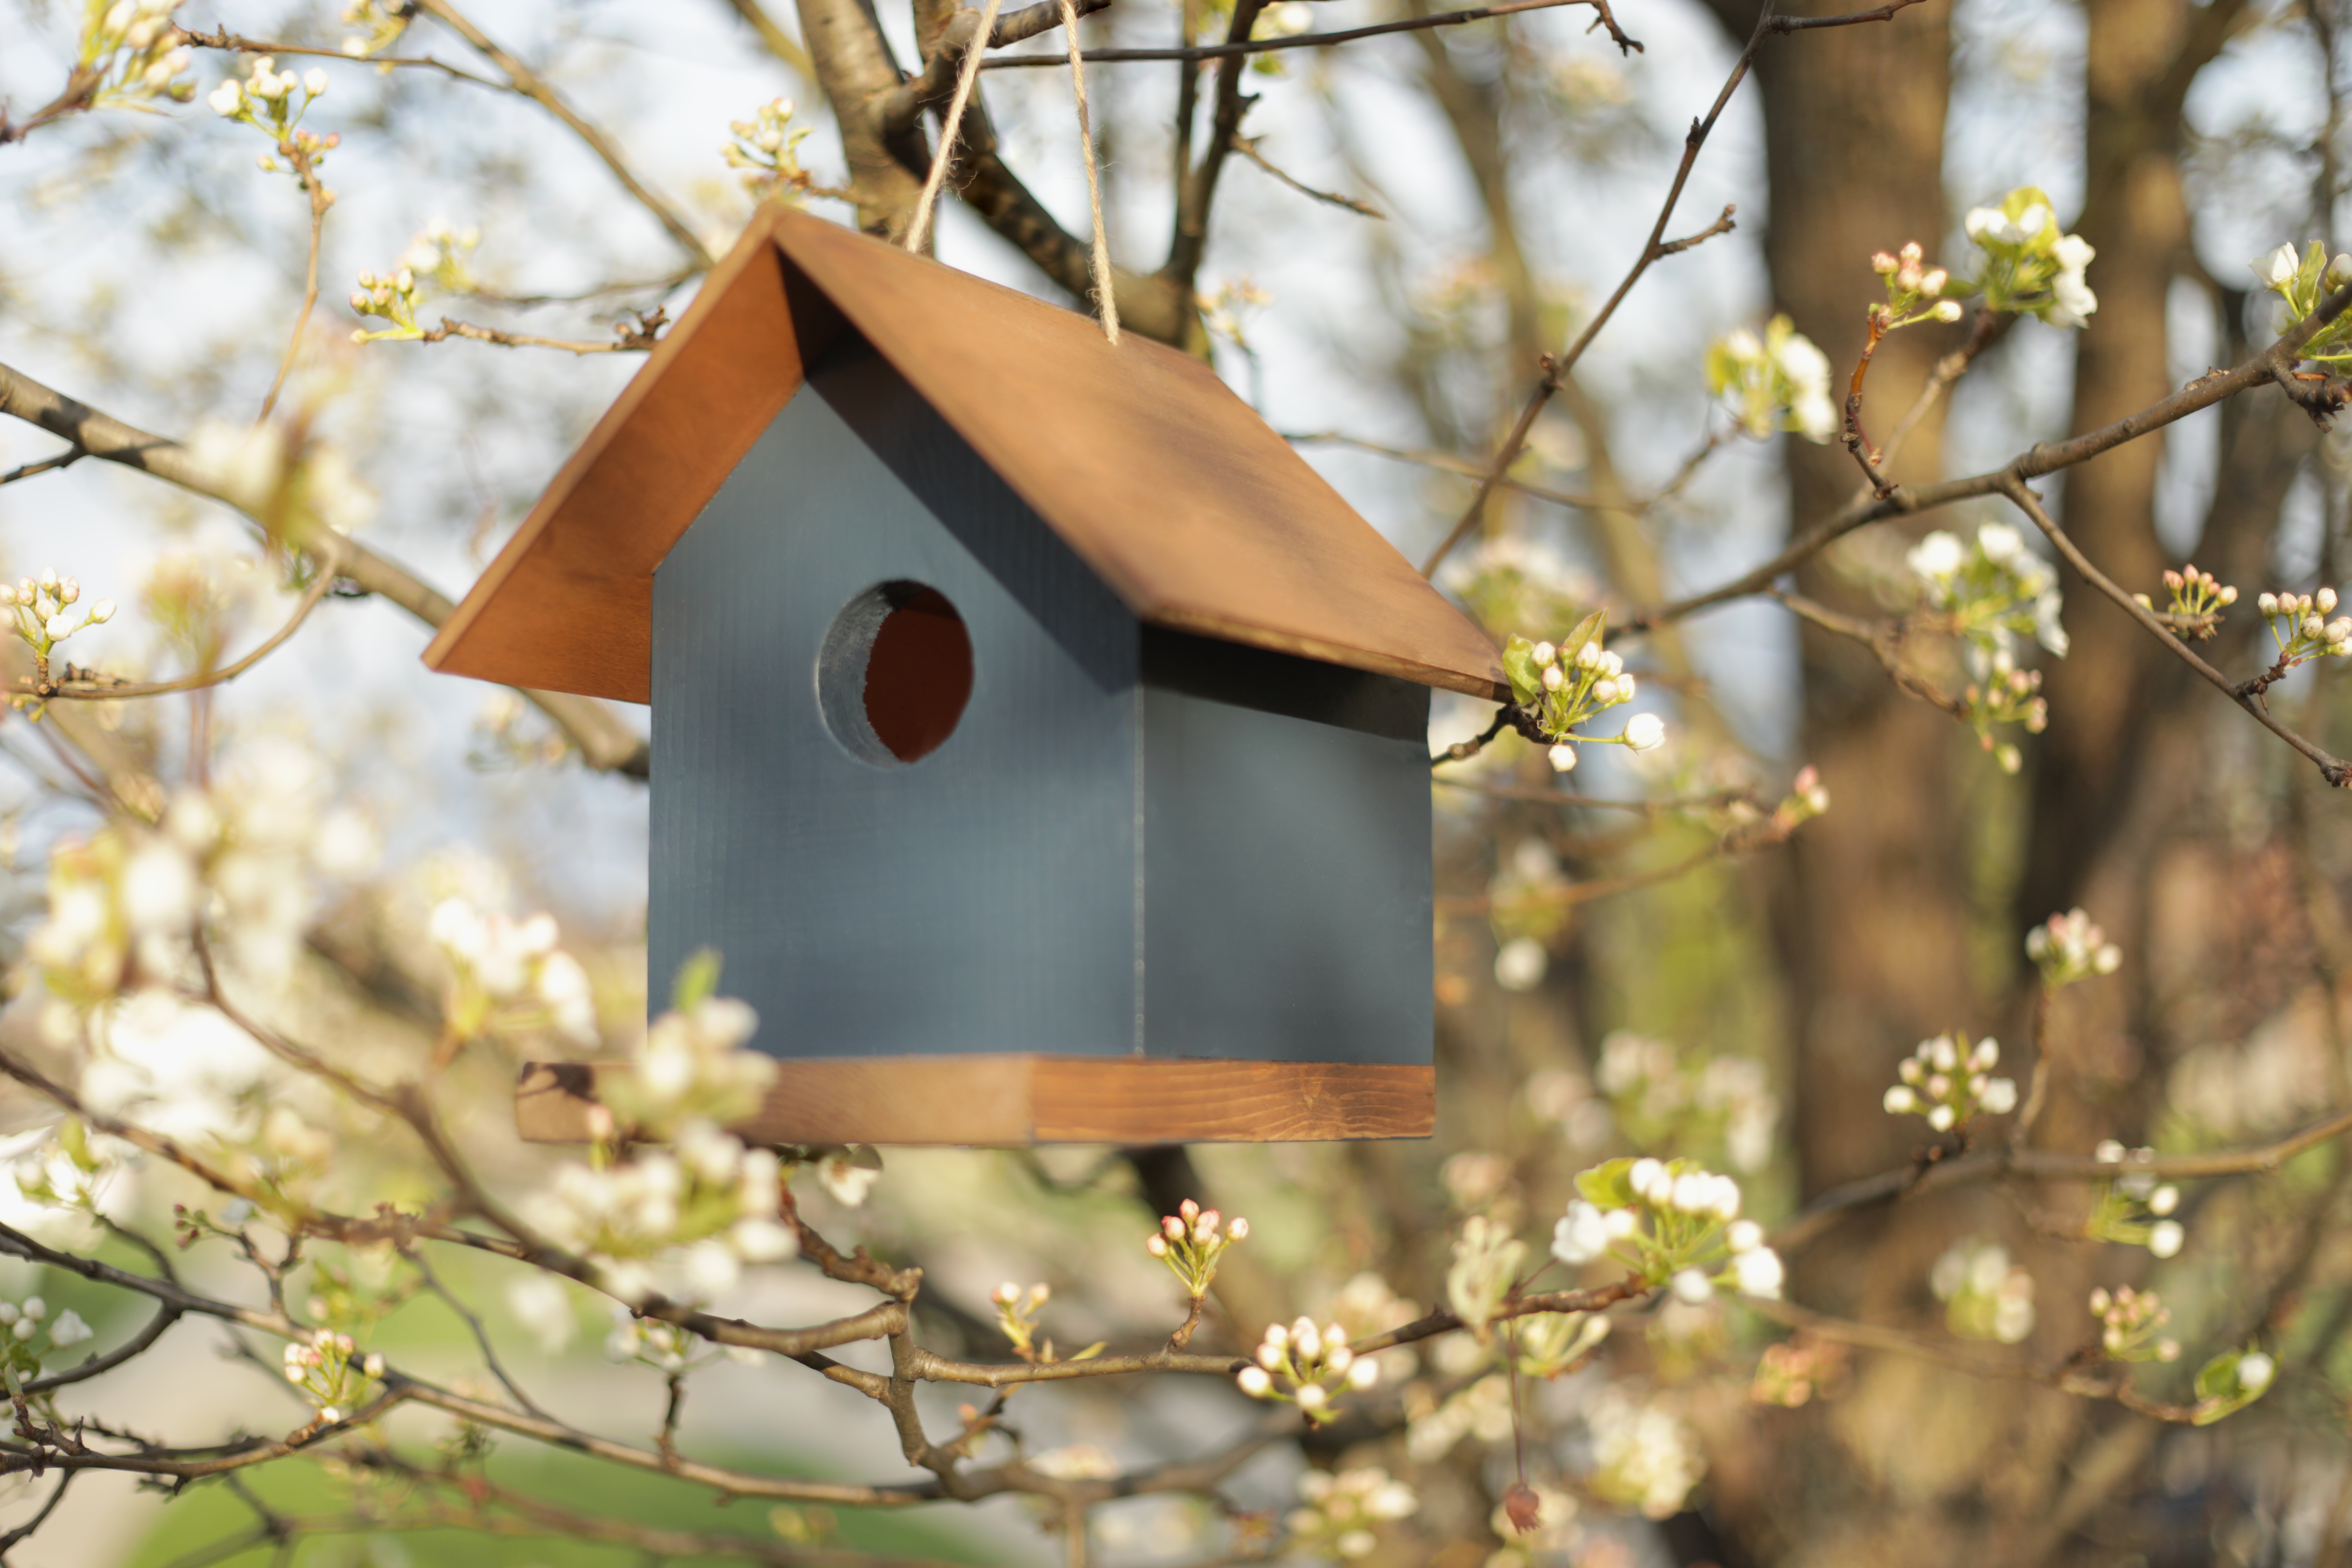 Wooden birdhouse in a tree